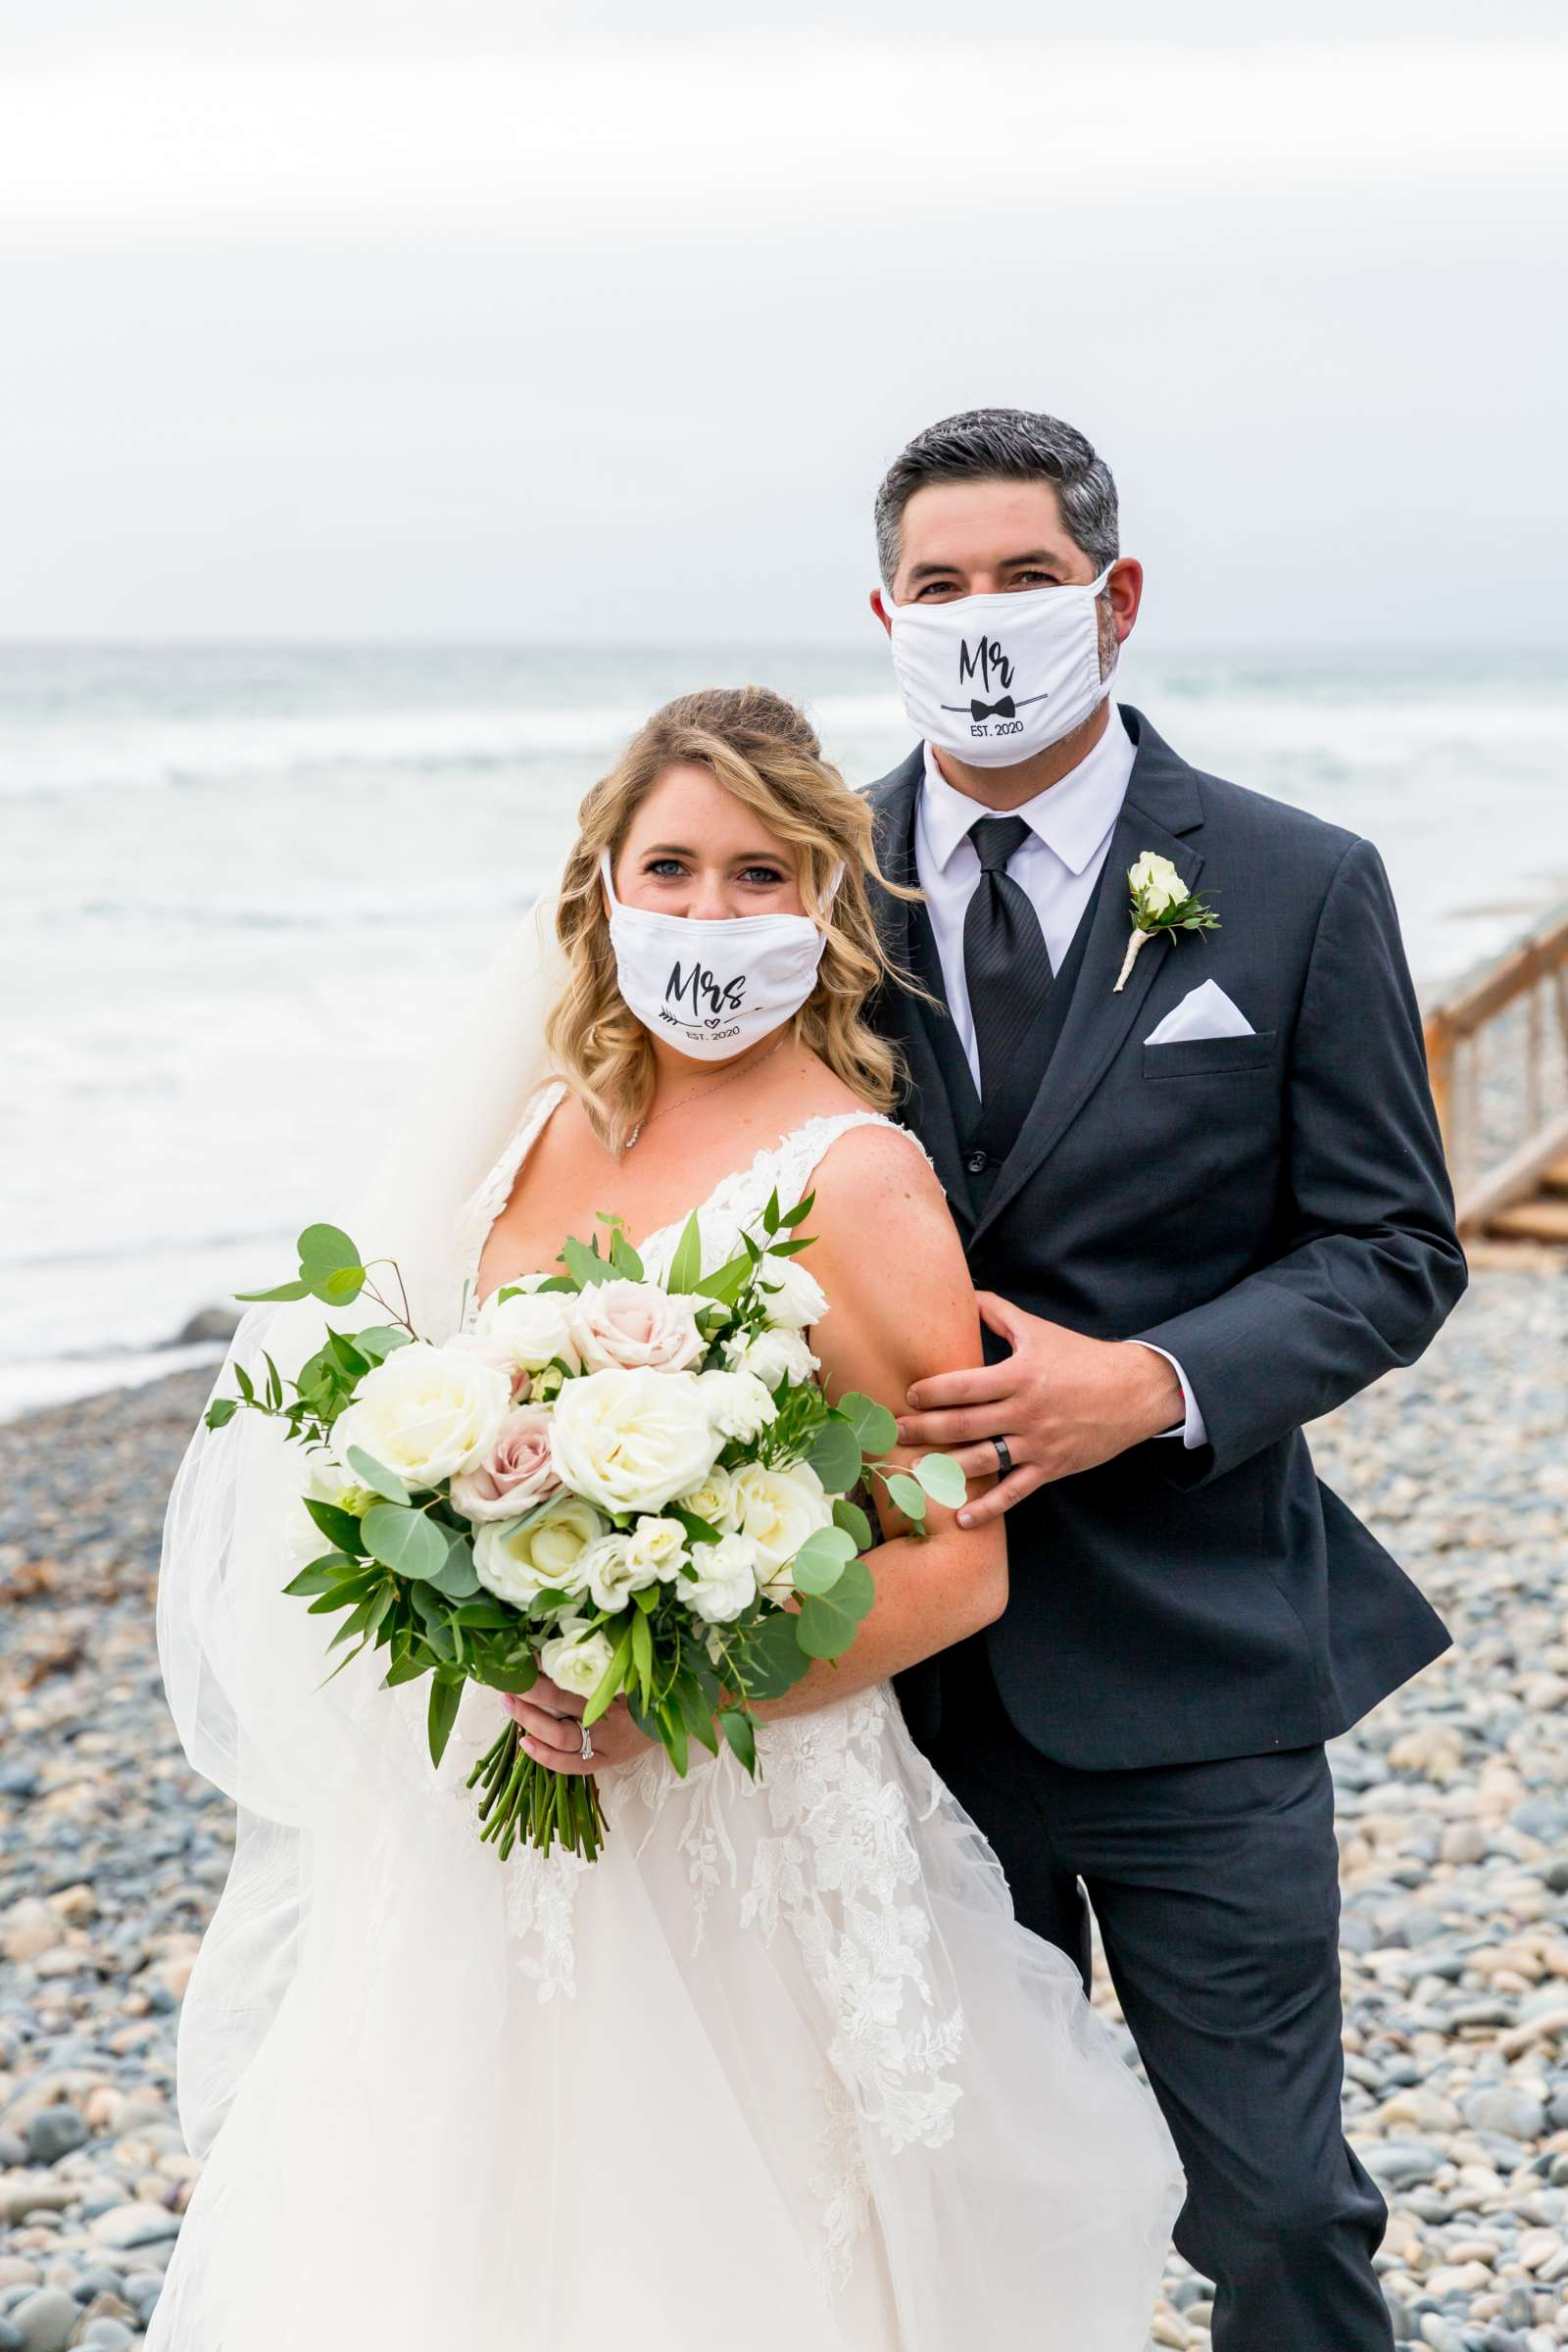 Cape Rey Carlsbad, A Hilton Resort Wedding, Michelle and Justin Wedding Photo #20 by True Photography